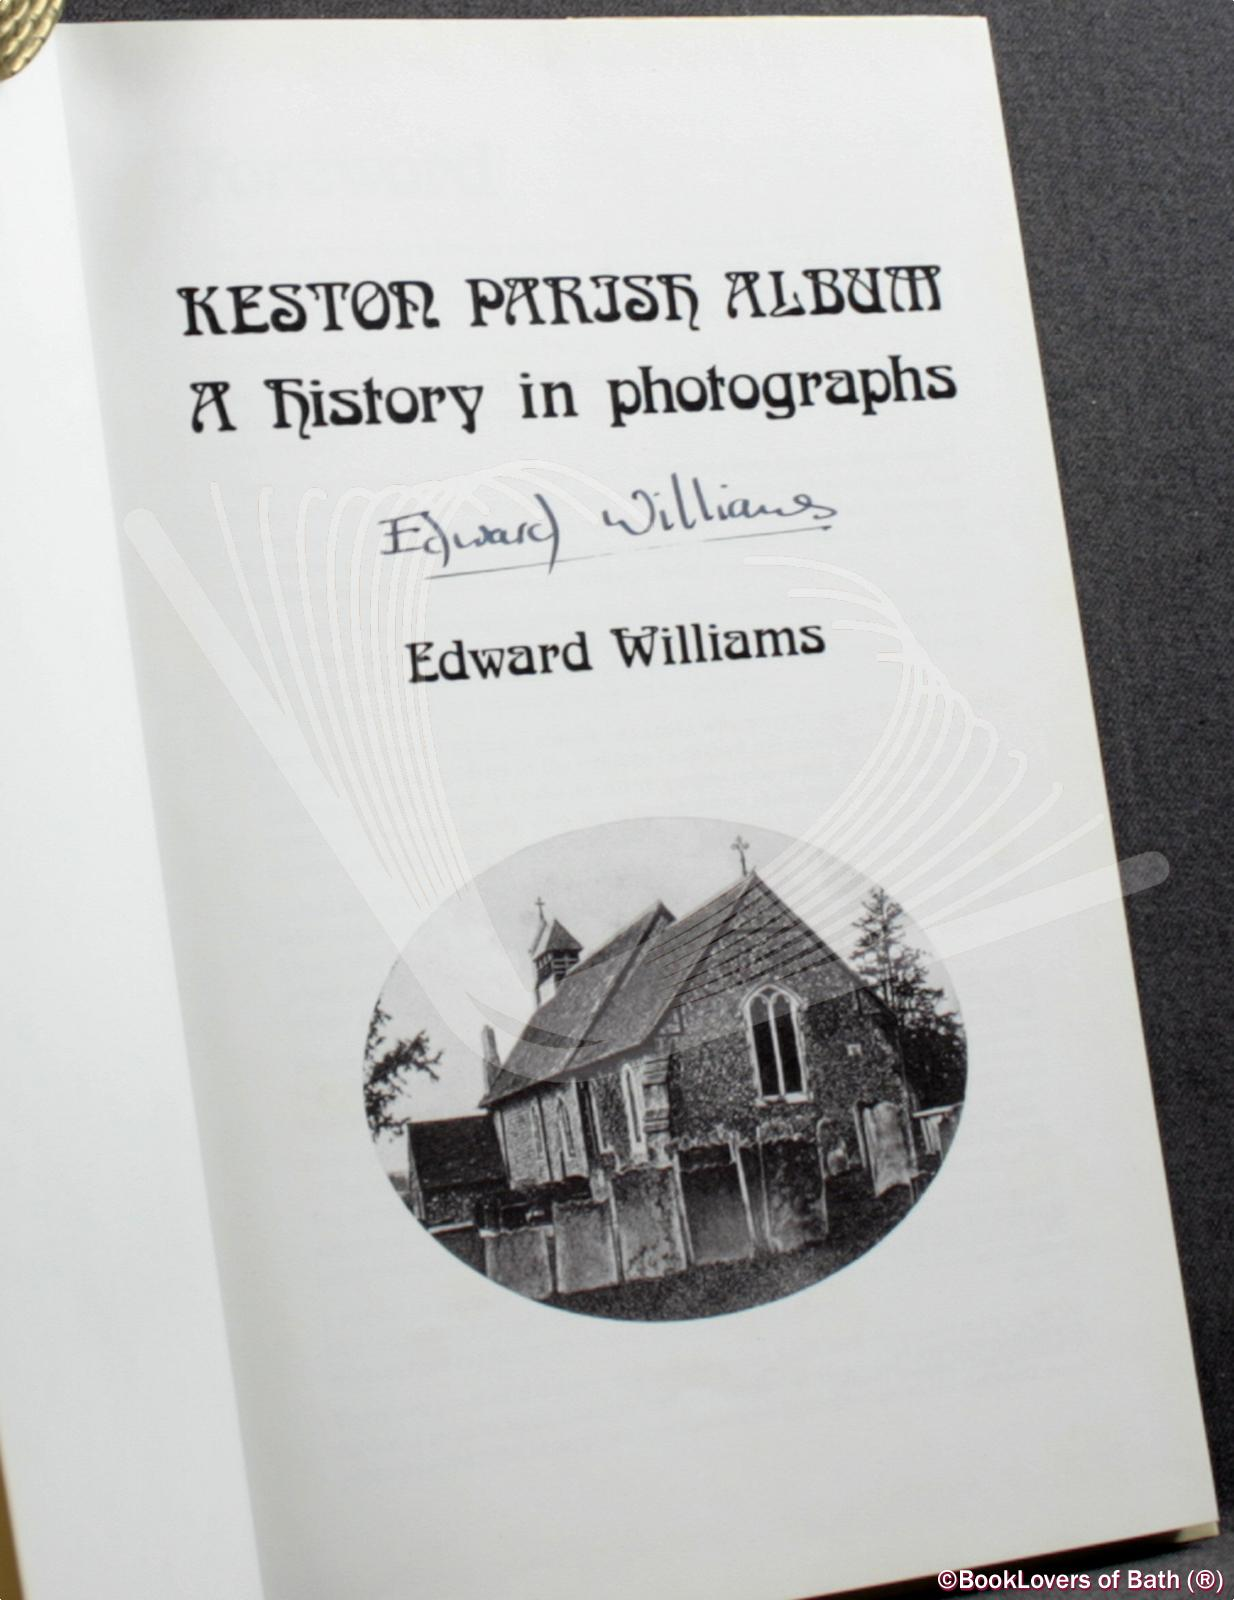 Keston Parish Album: A Photograph Album of the Past - Edward Williams